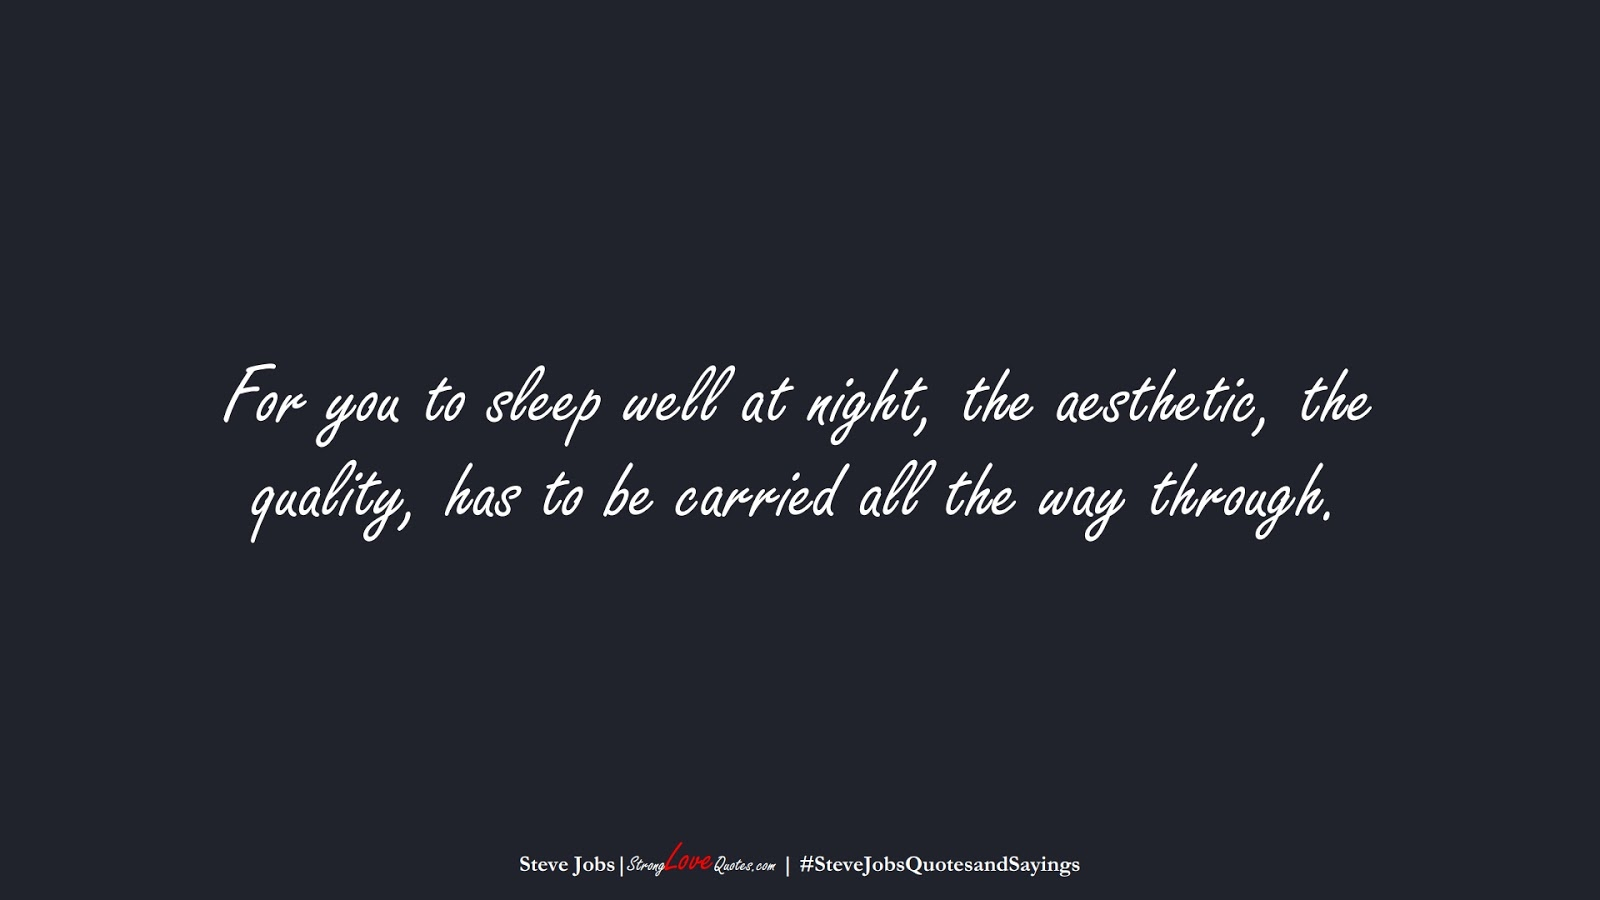 For you to sleep well at night, the aesthetic, the quality, has to be carried all the way through. (Steve Jobs);  #SteveJobsQuotesandSayings